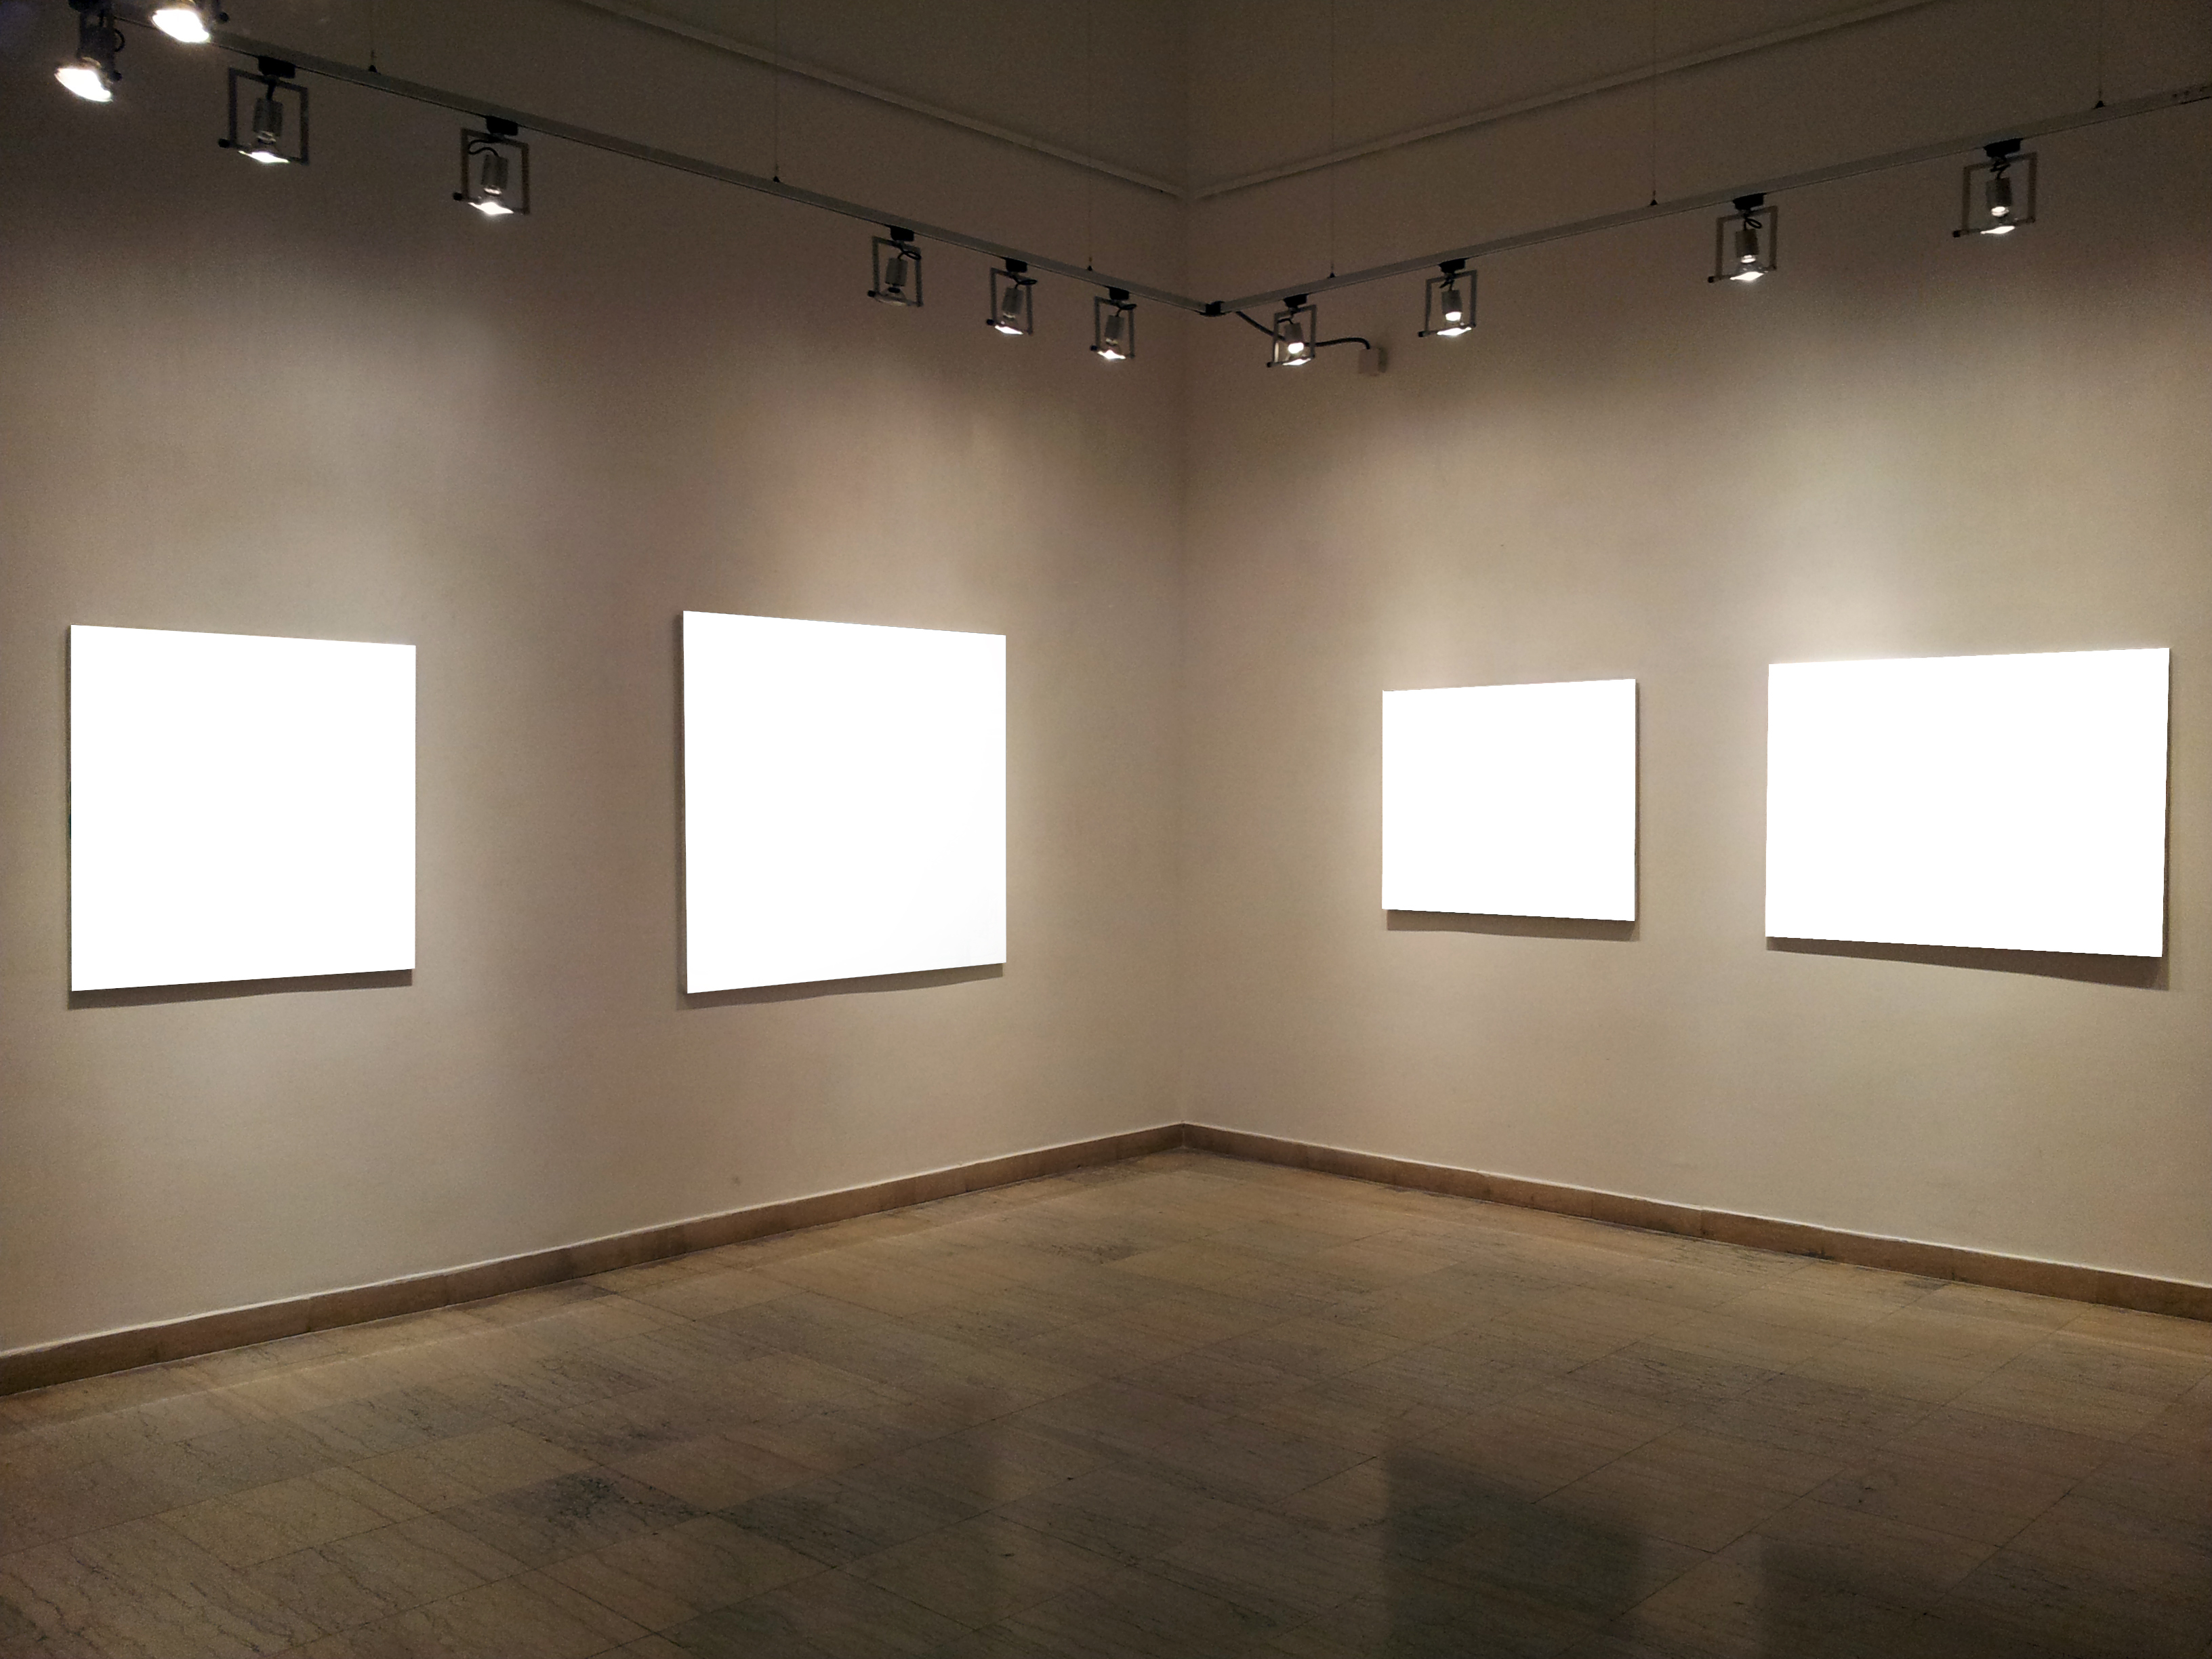 Captivating Impact Of Color Temperature And Lighting In An Art Gallery